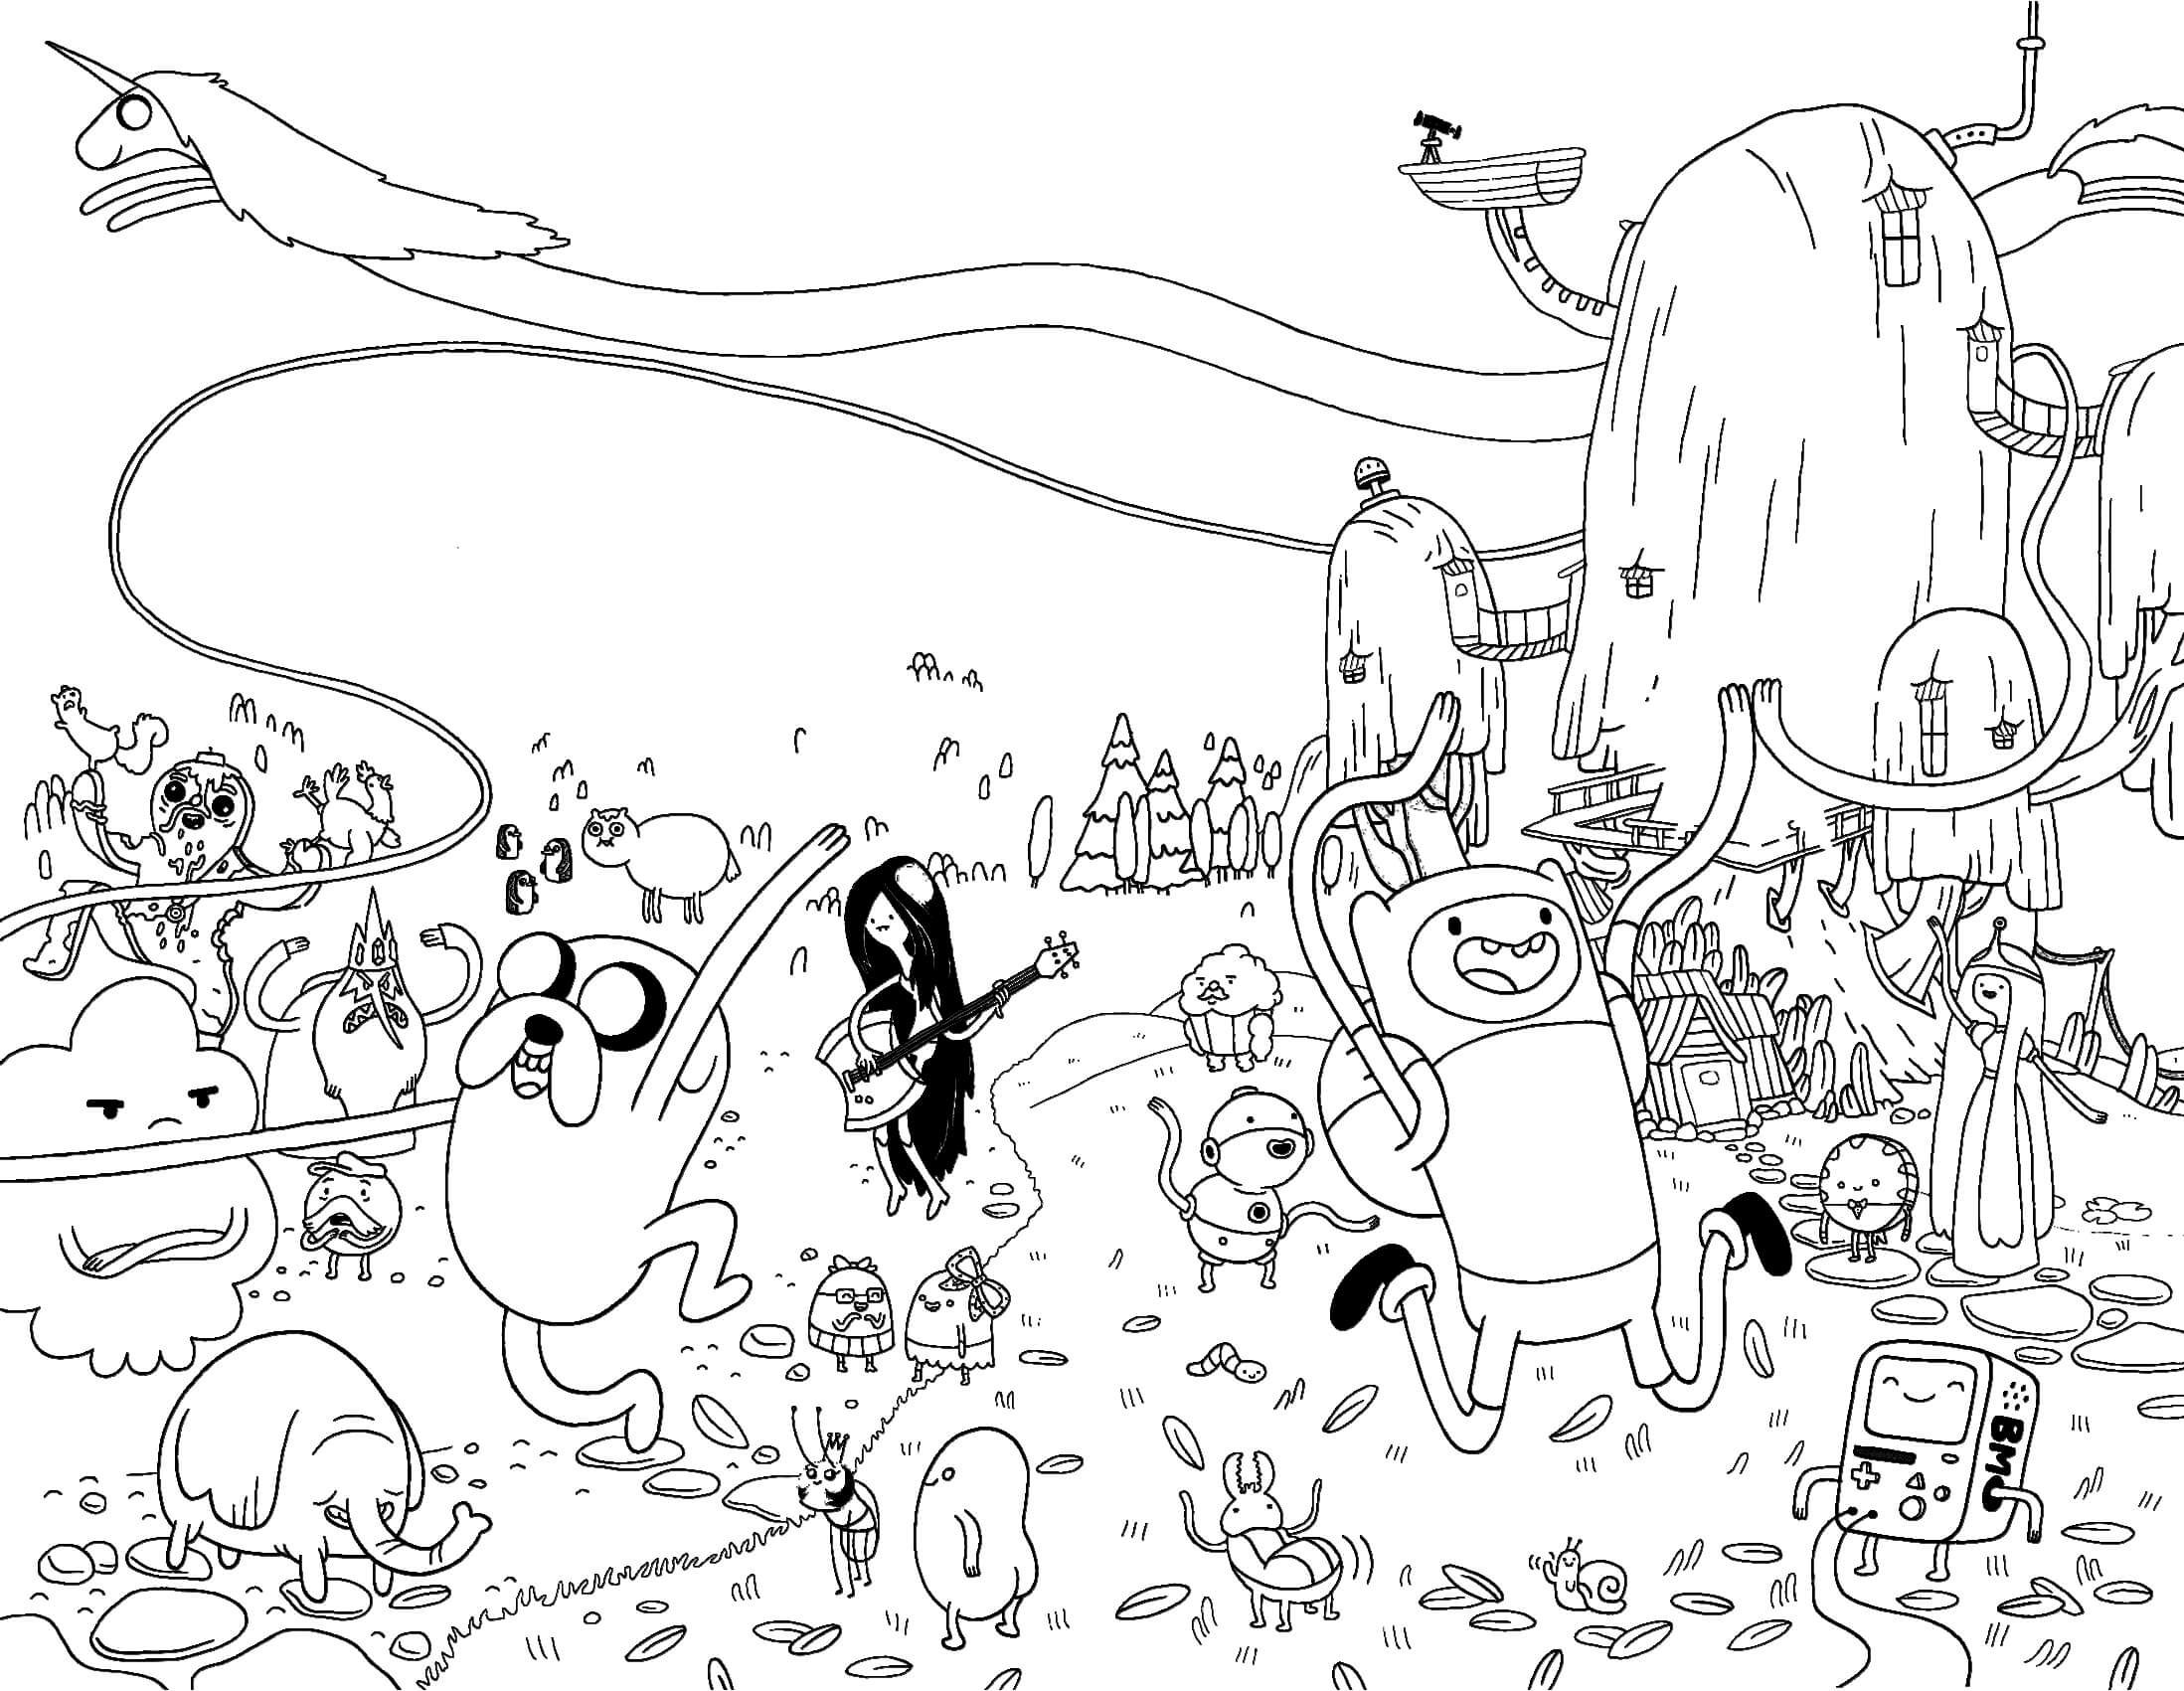 Adventure Time Coloring Pages4 Free Printables Coloring Pages Adventure Time Coloring Pages Cartoon Coloring Pages Coloring Pages